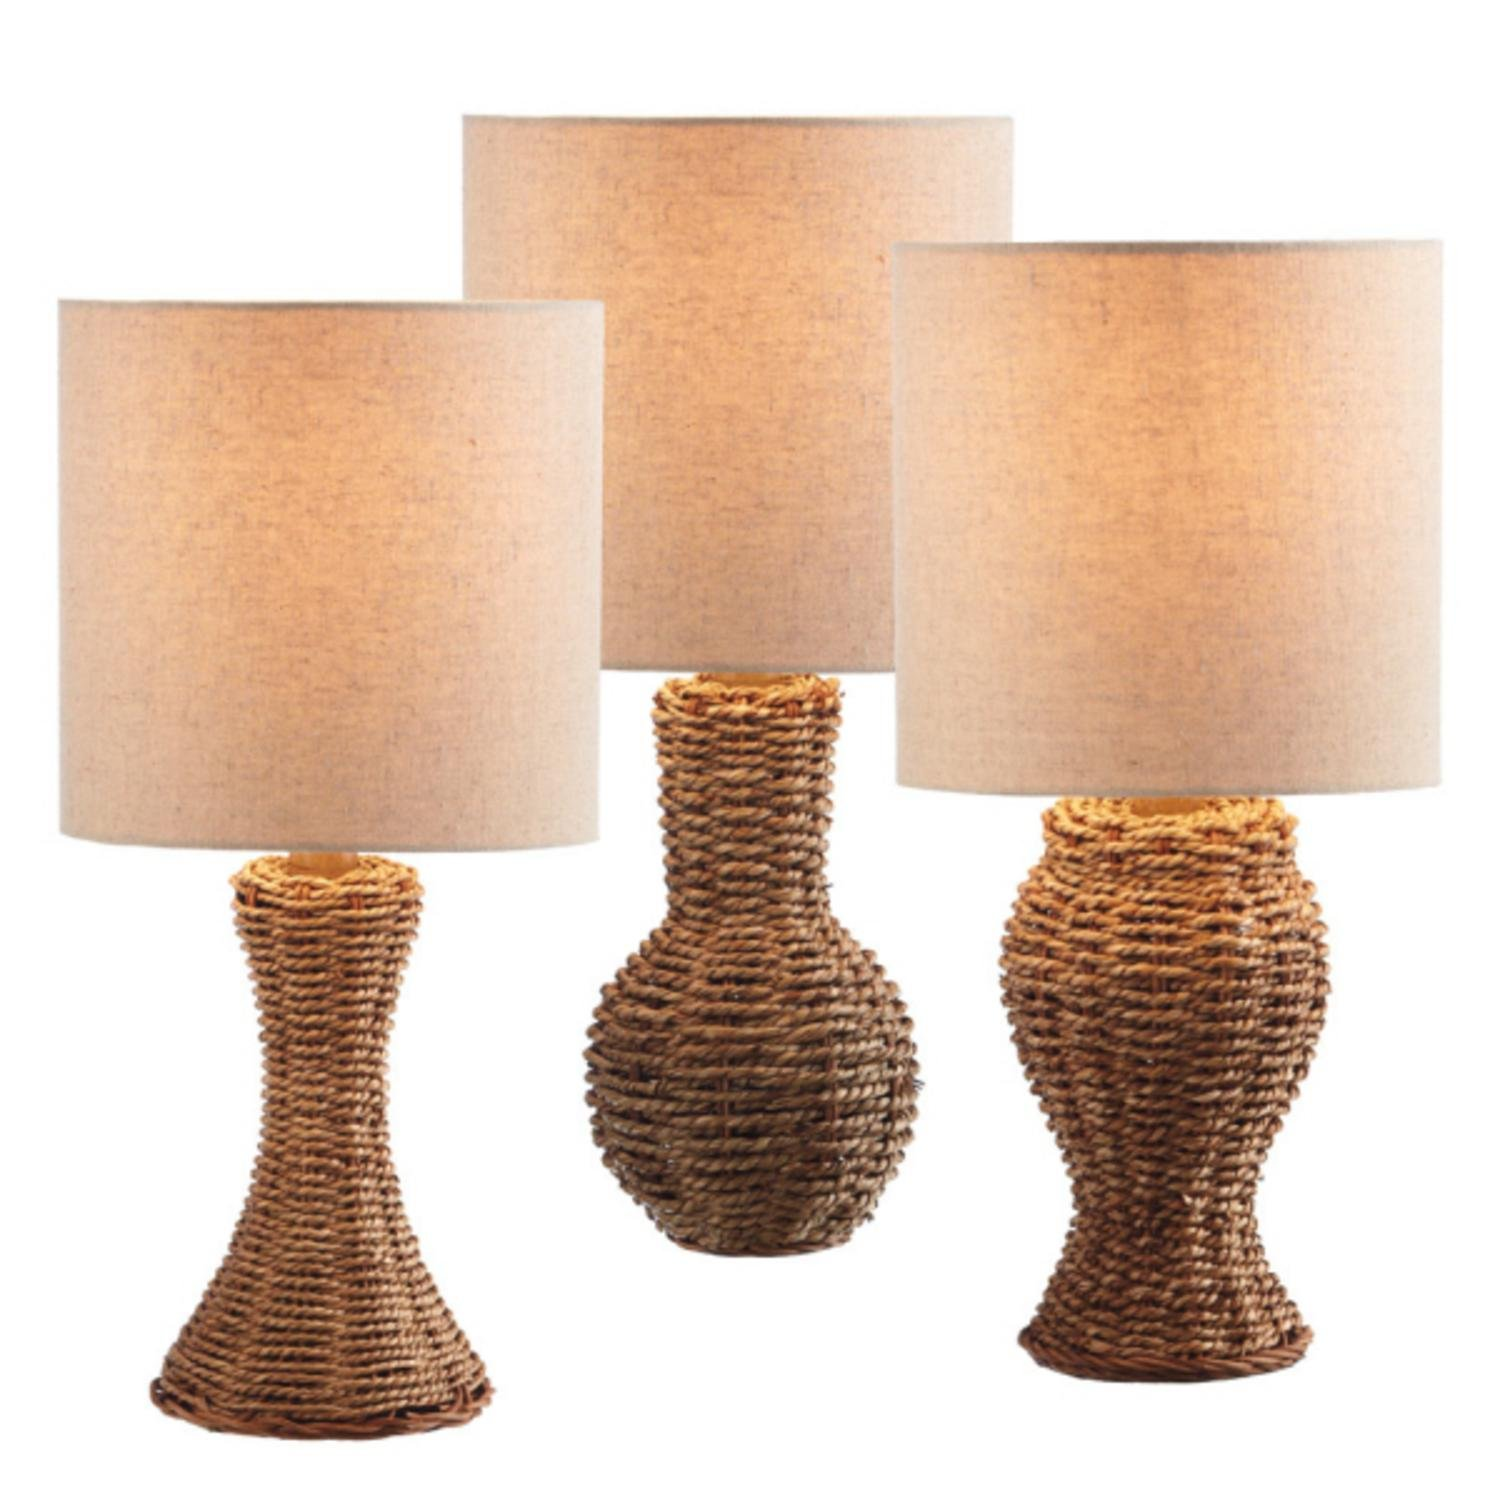 Set of 3 Natural Wicker Mini Table Lamps with Cream Shades 16''